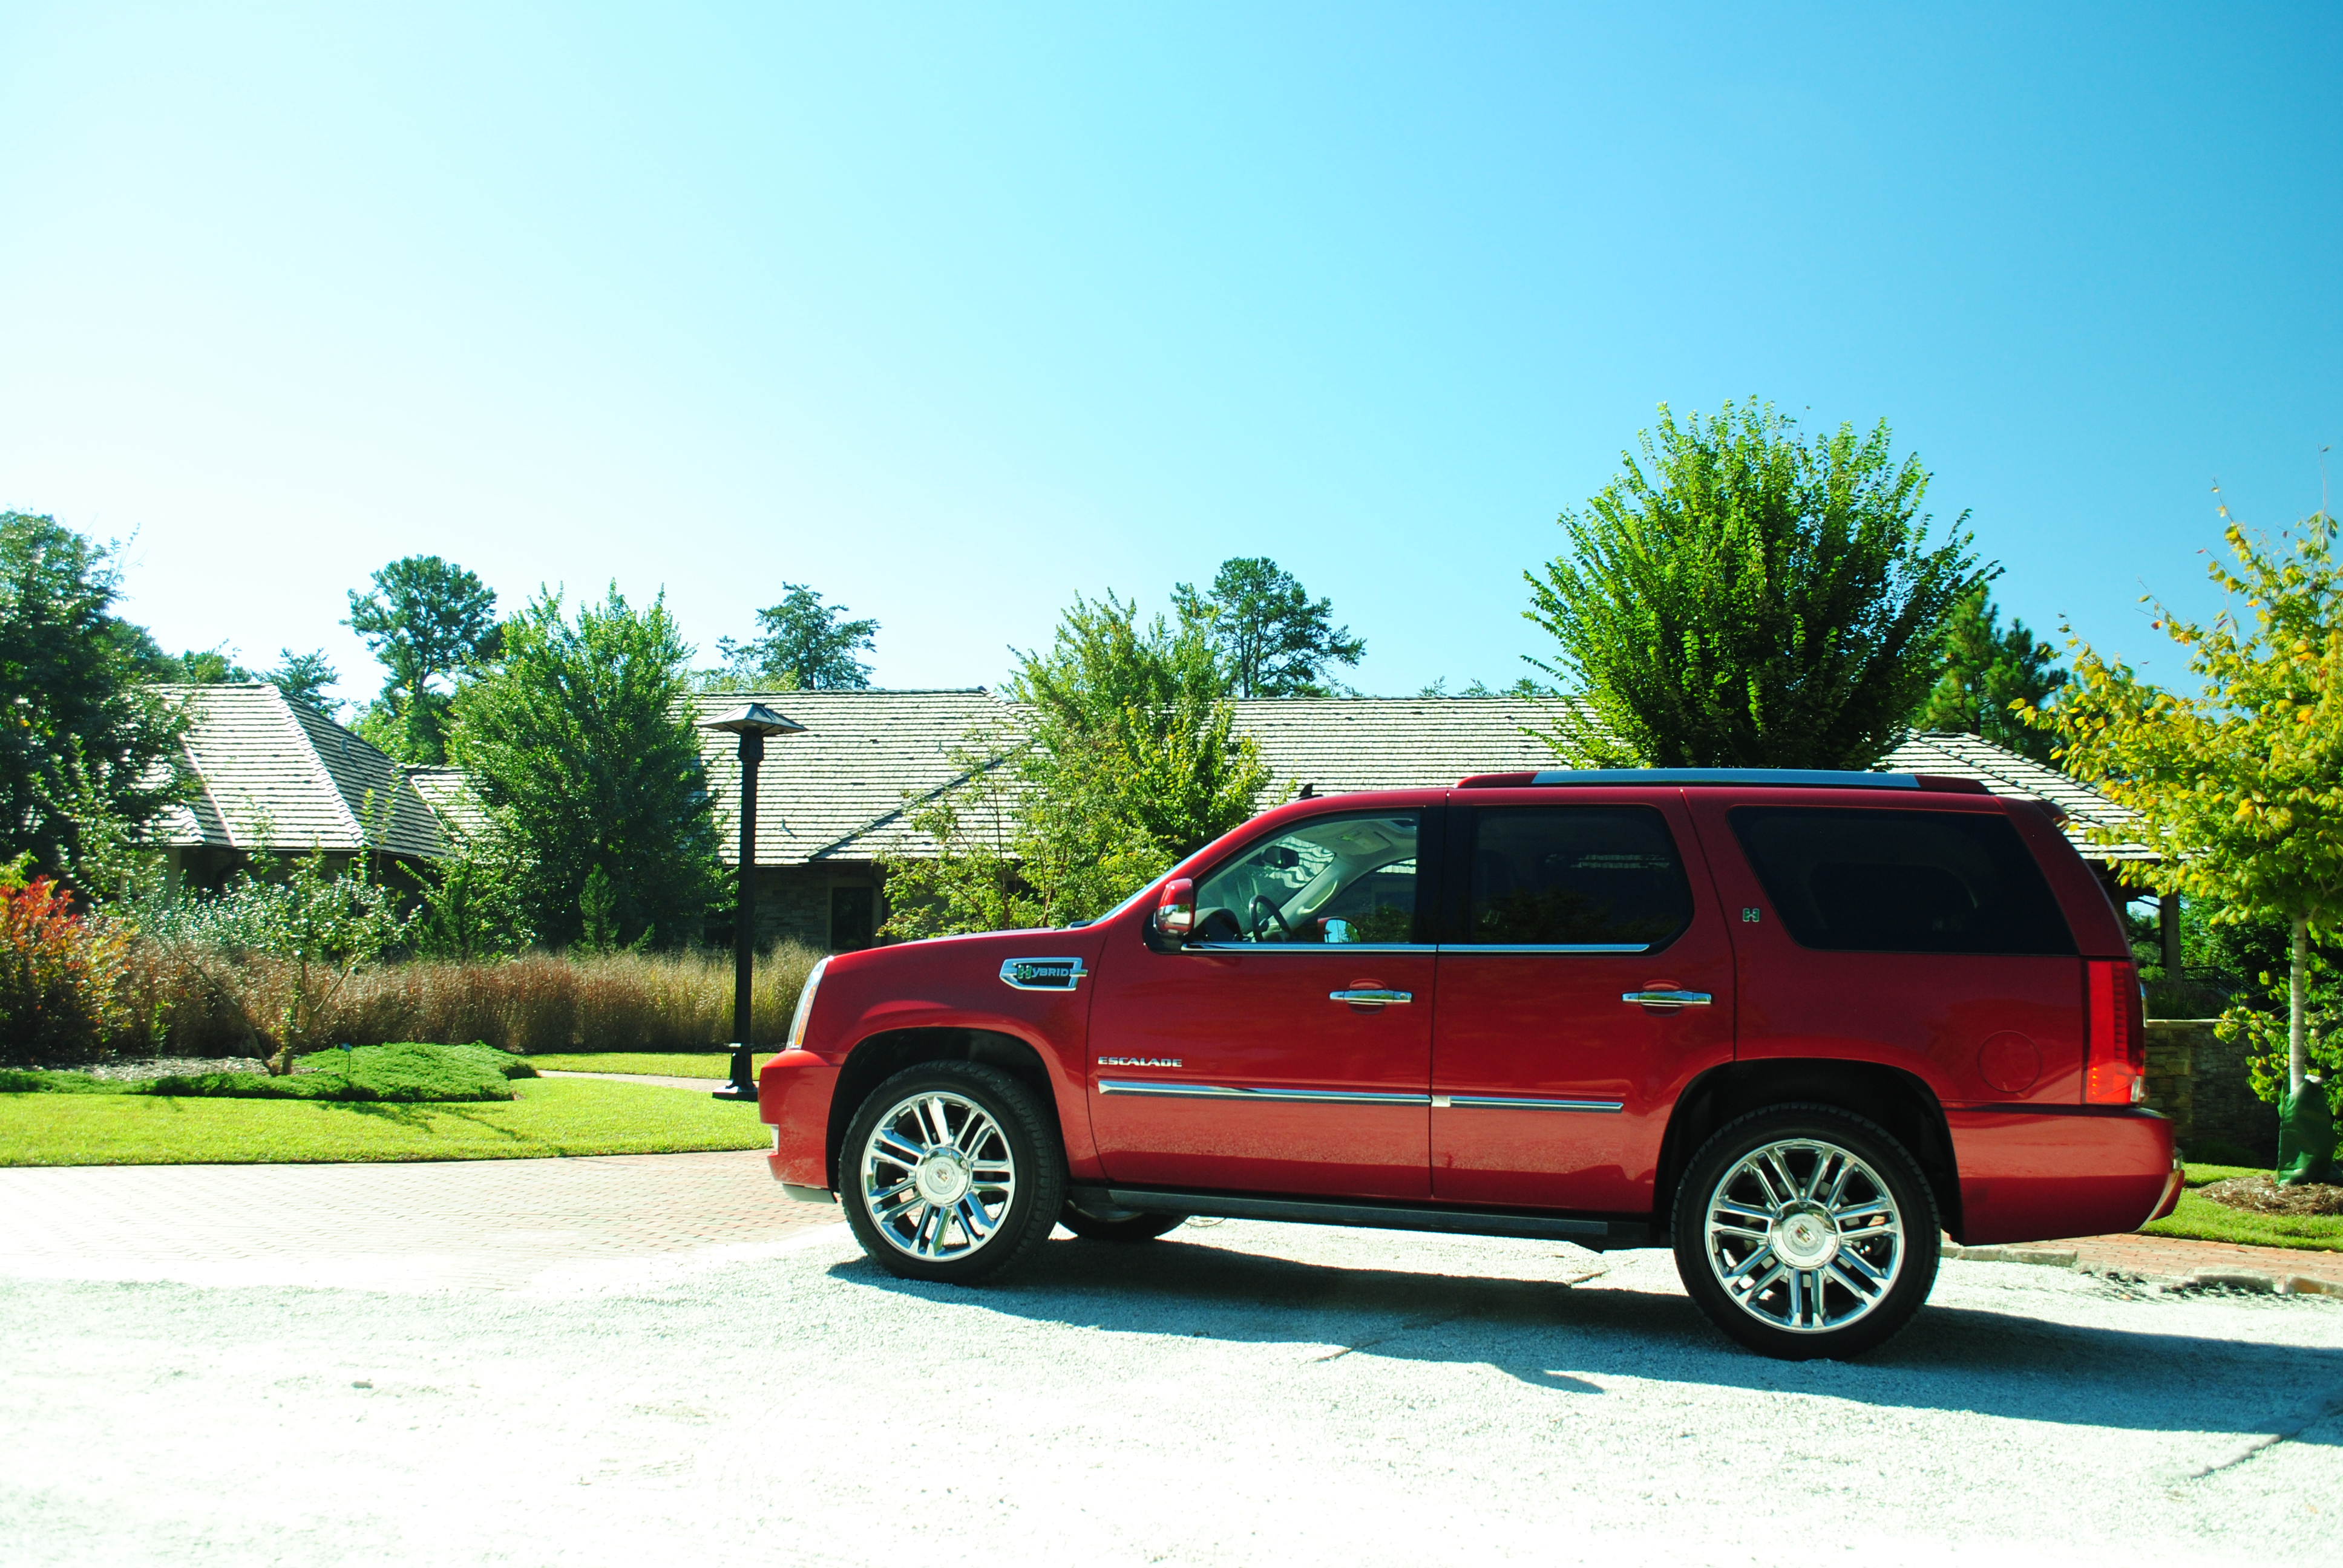 2012 cadillac escalade hybrid platinum edition road test and review frequent business traveler. Black Bedroom Furniture Sets. Home Design Ideas